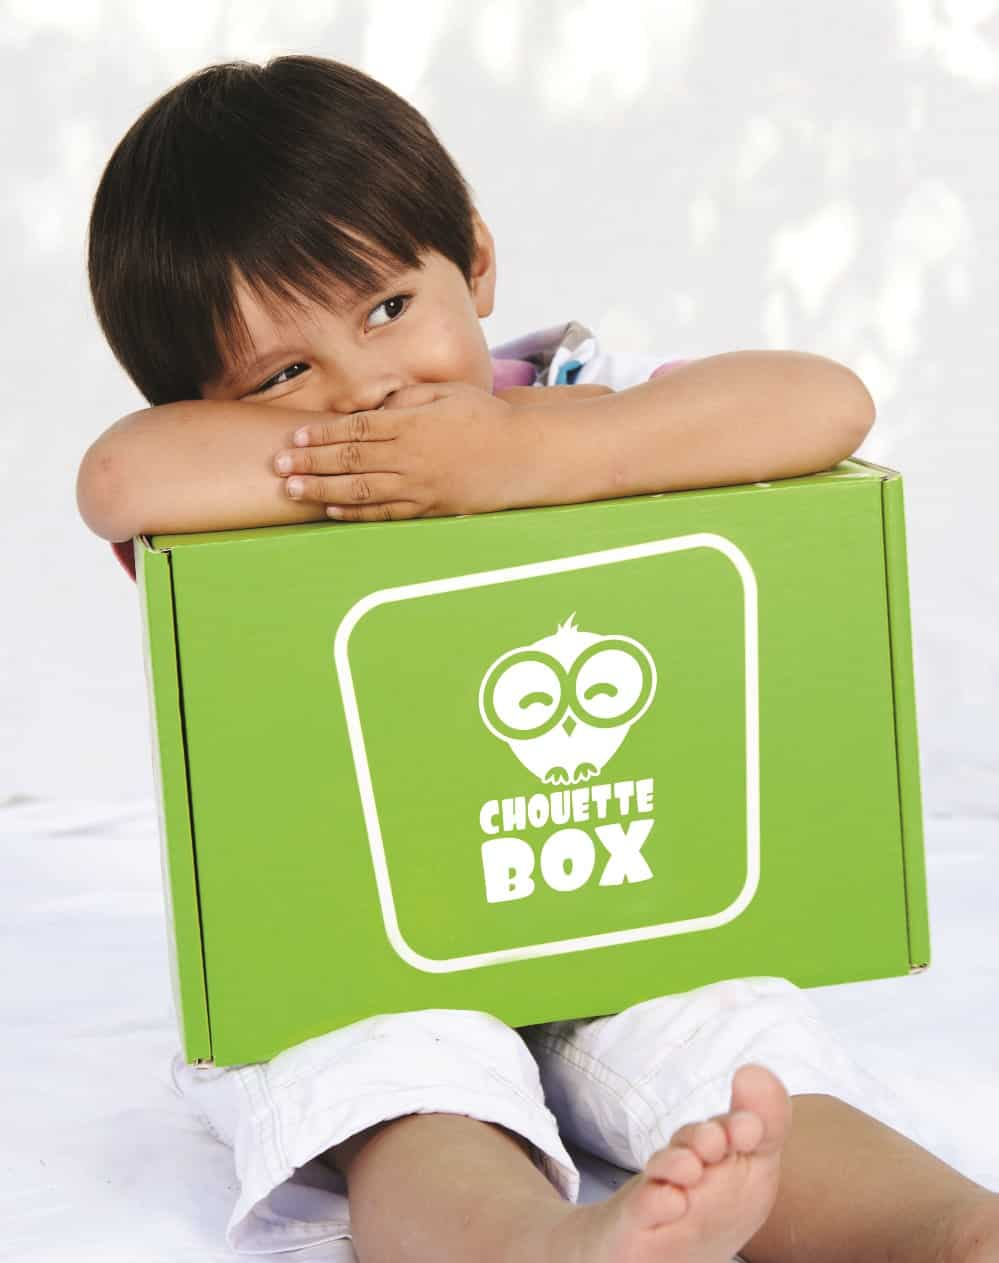 Chouette Box enfant